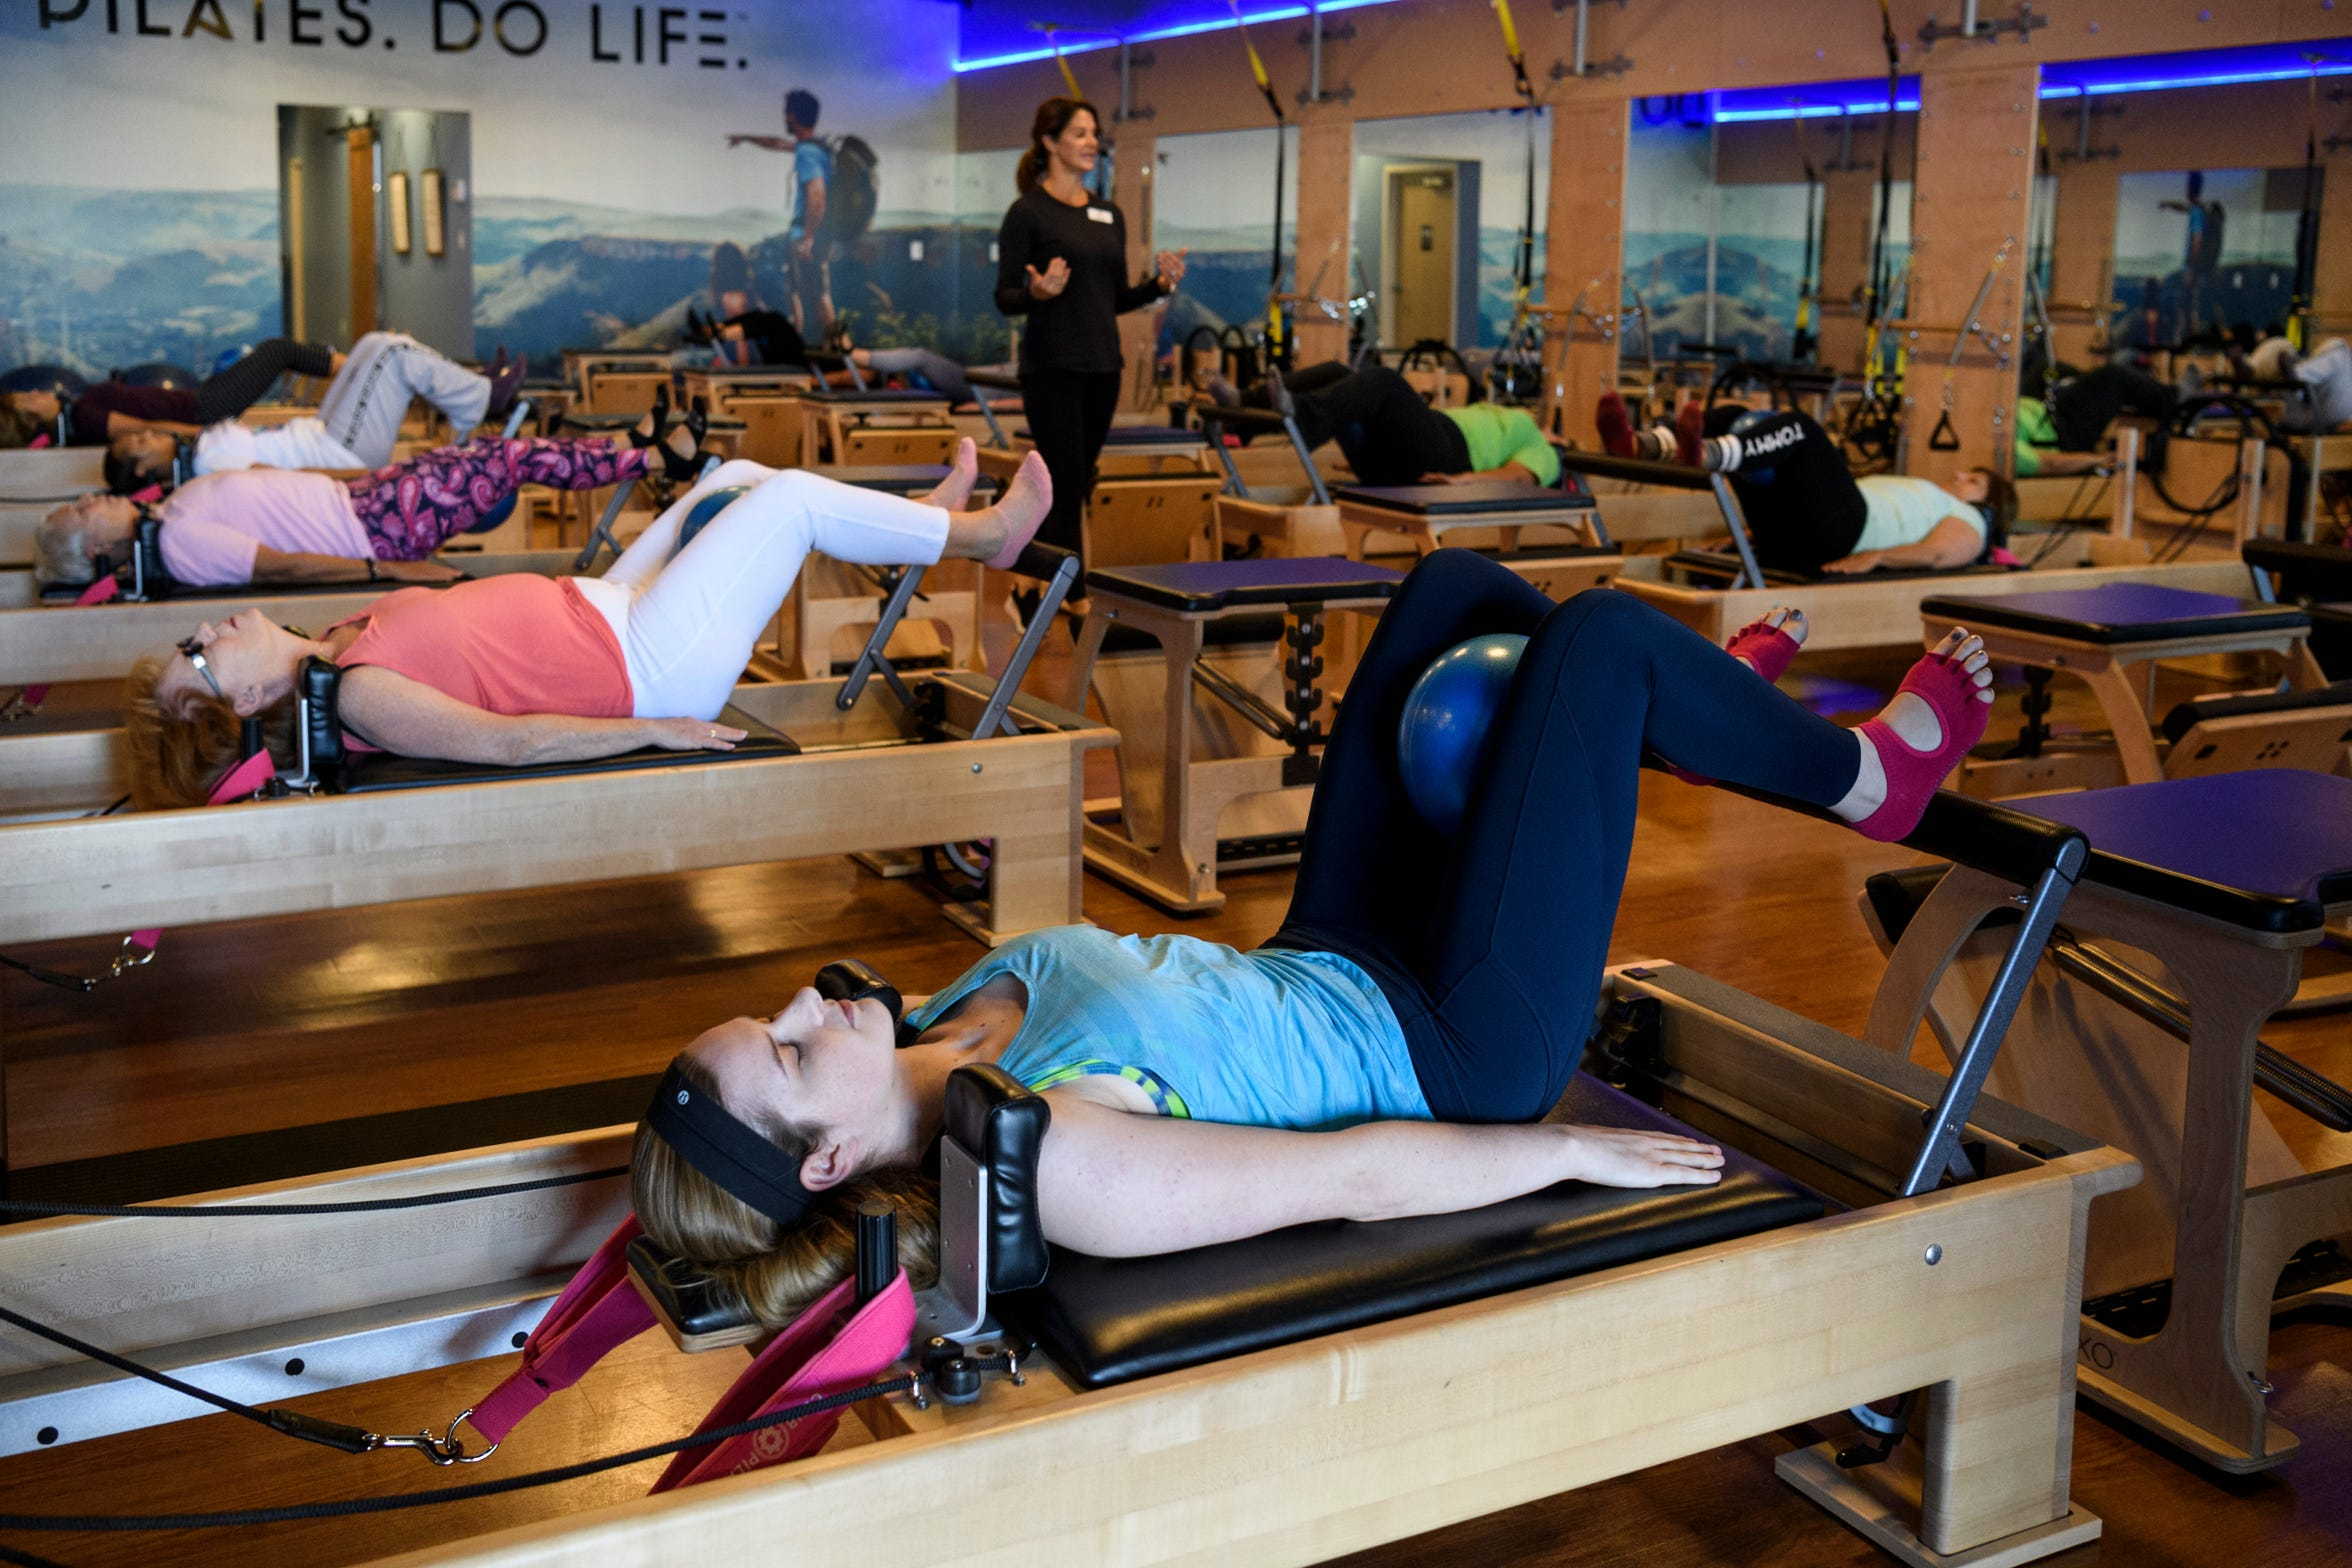 Molly Jillson, front, participates in a CP Reformer Flow class at Club Pilates in Evansville, Wednesday morning, Oct. 2, 2019. After being diagnosed with multiple sclerosis, she decided to do pilates to help with balance, control and flexibility.